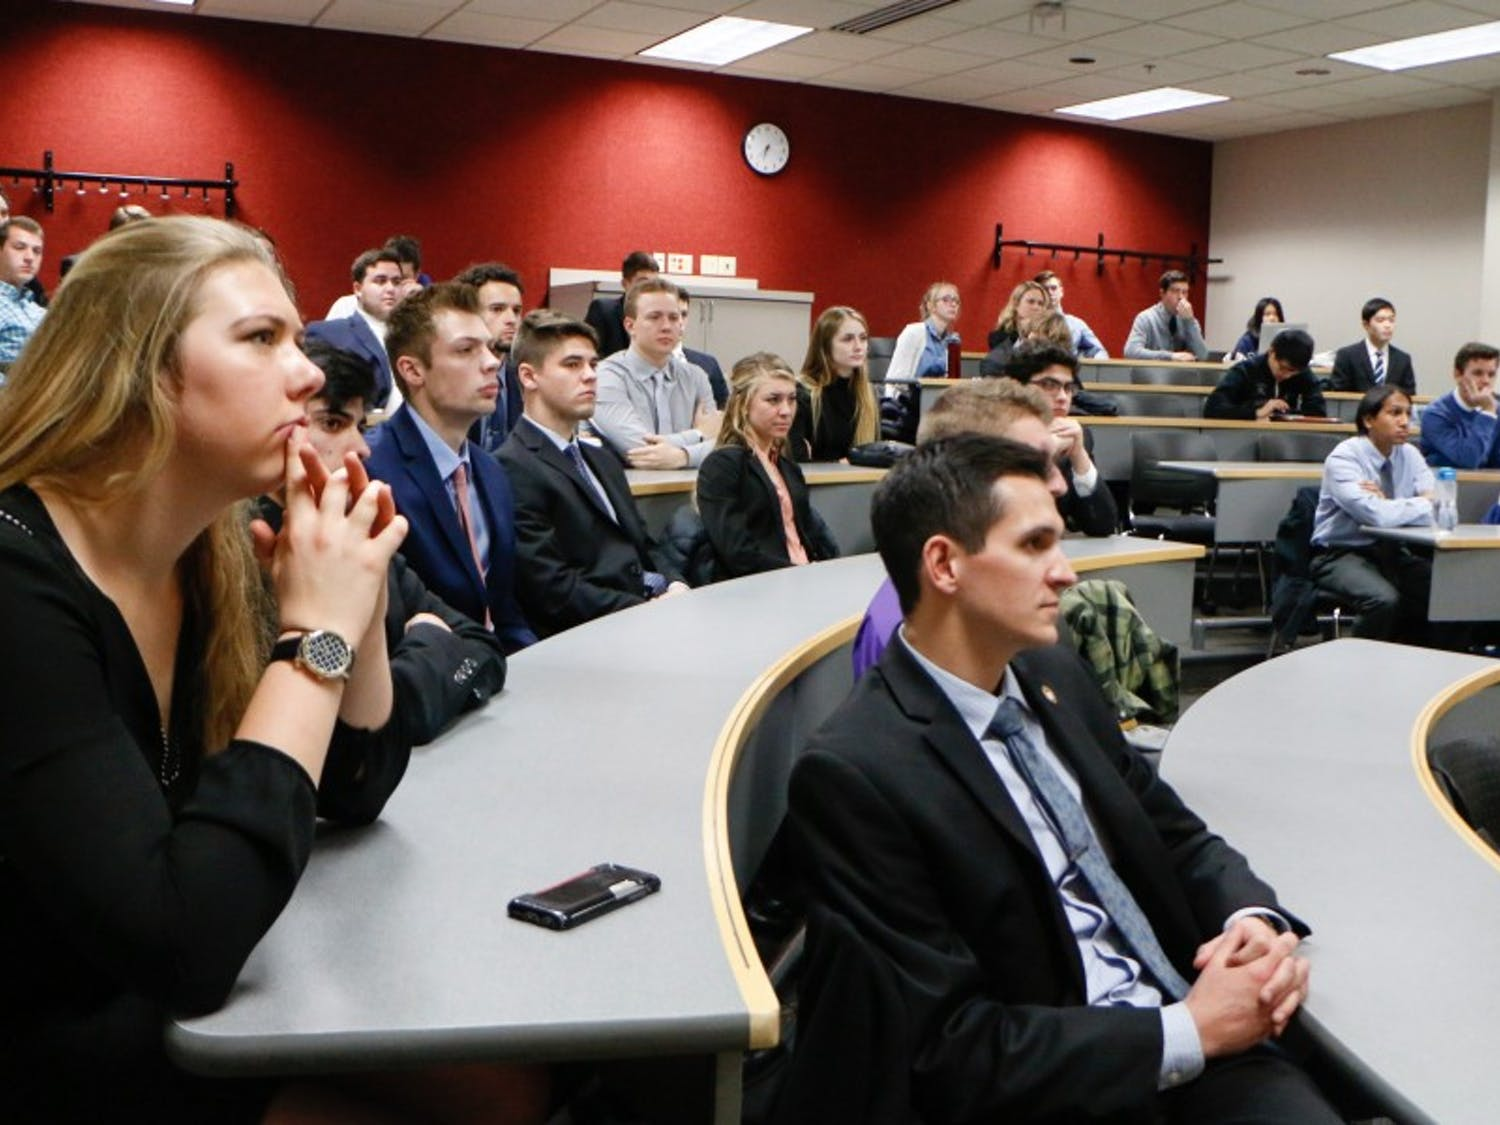 Students attend a Badger Consulting meeting, where they work with local businesses to improve their professional skills.